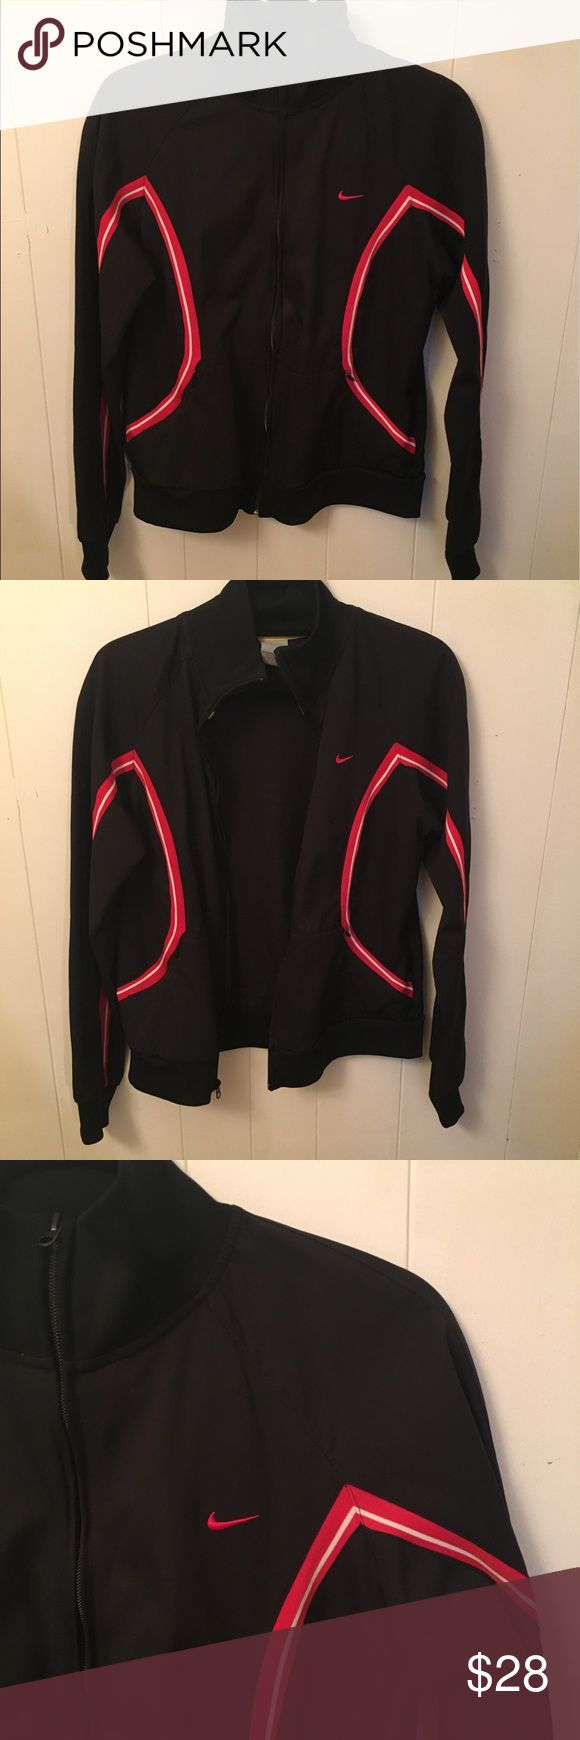 Nike Track Jacket Nike Track Jacket Size - L   Color - Black/Red Zip up track jacket, 2 front pockets 100% Polyester Gently used, in great condition Nike Jackets & Coats